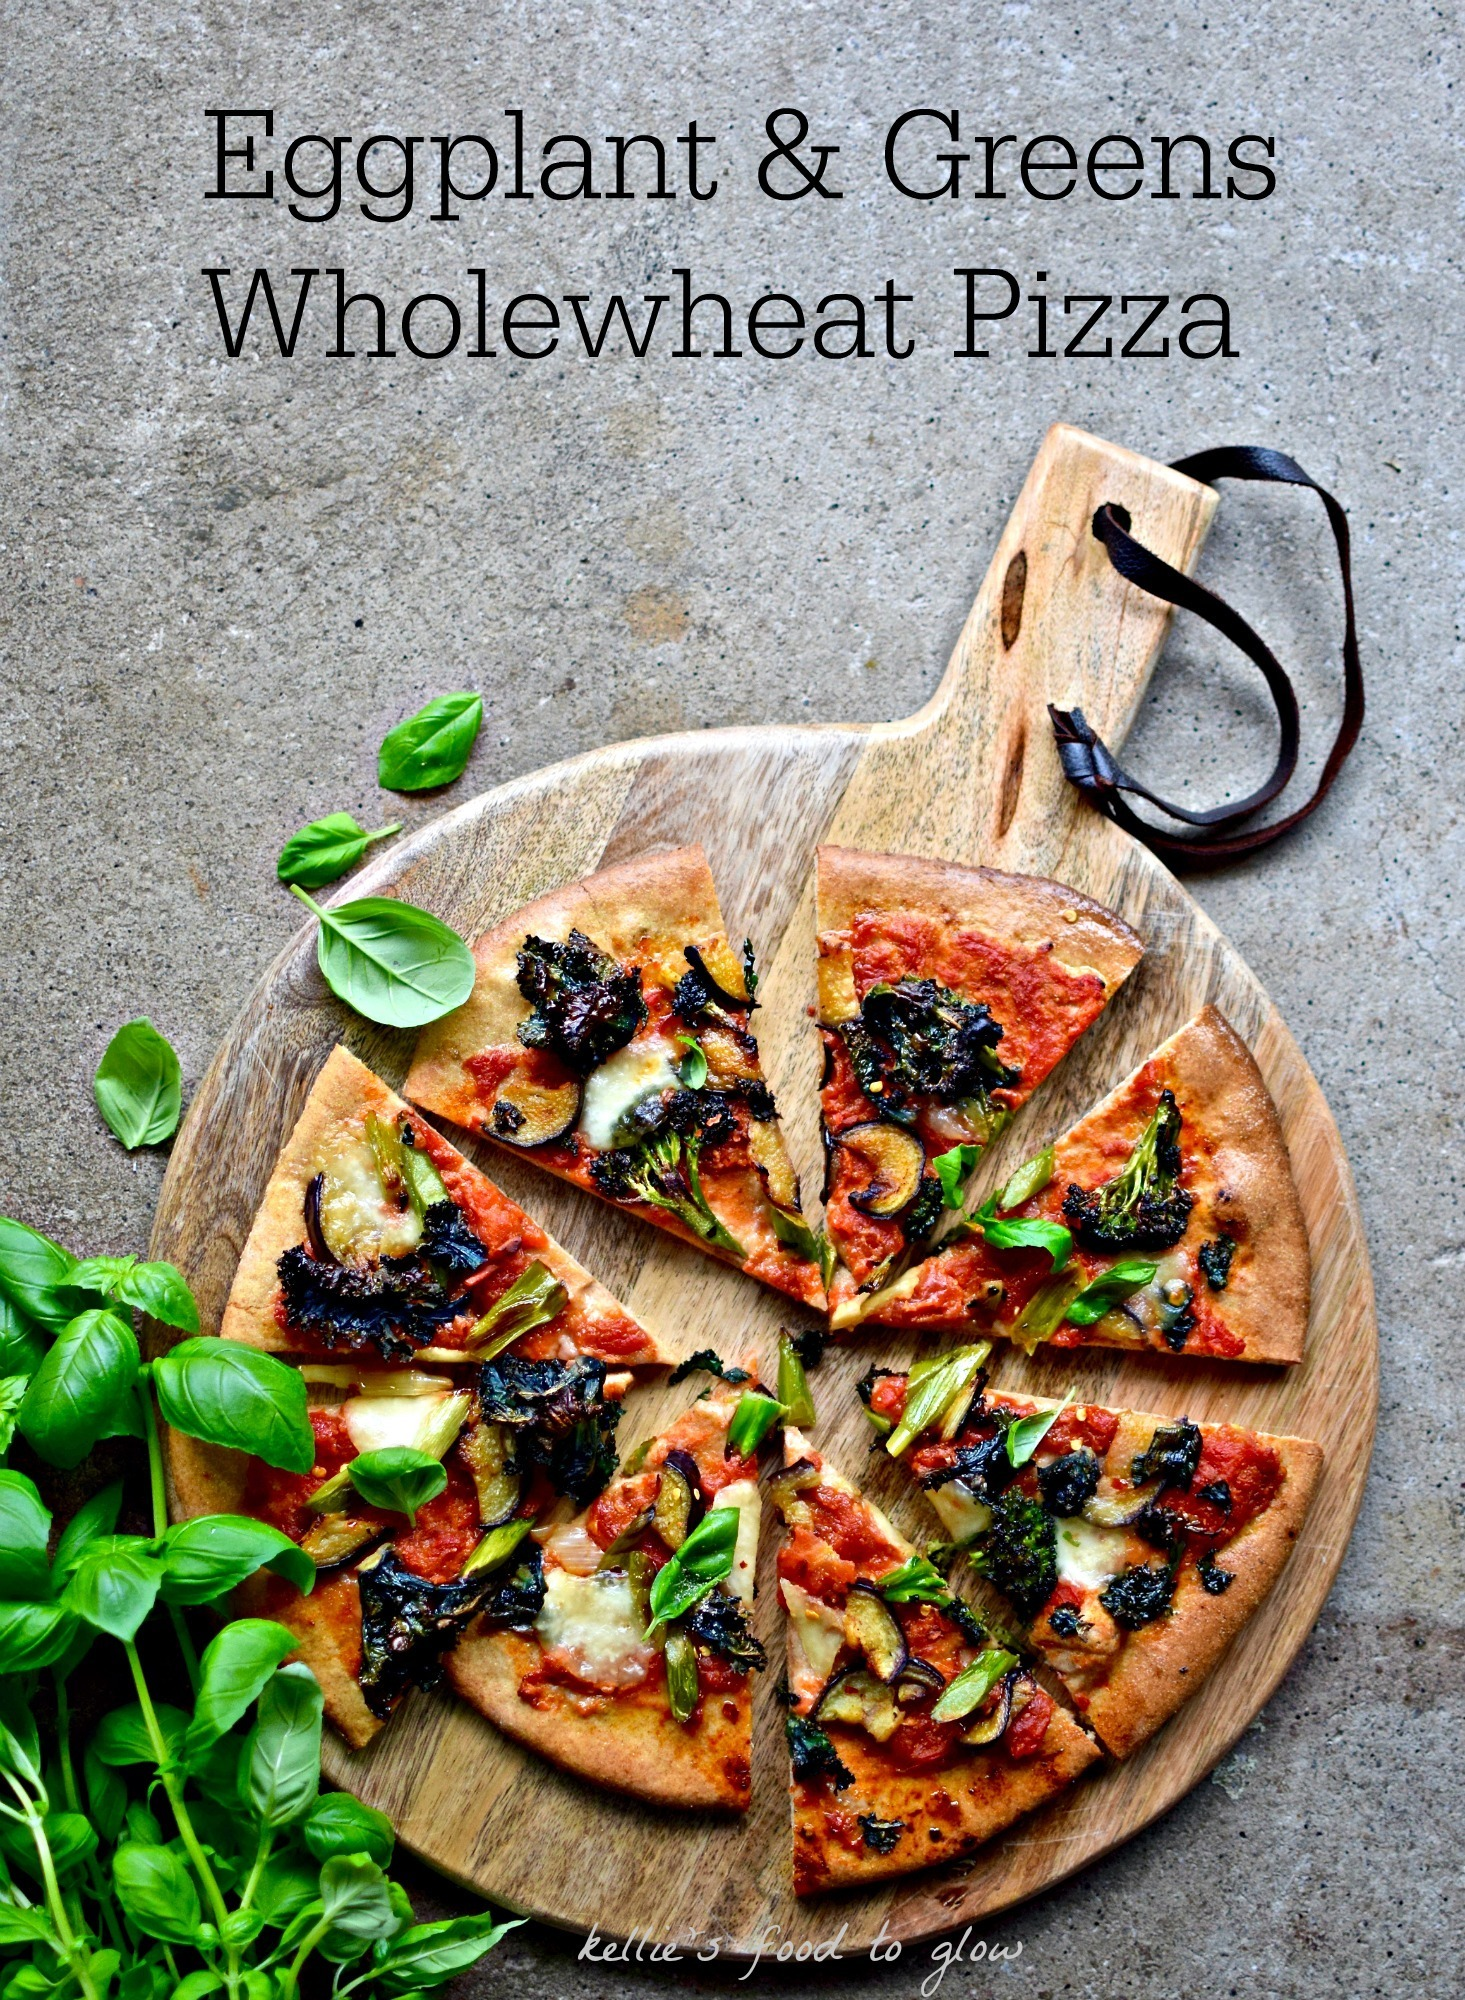 Eggplant and Double Green Pizza (and Calzone!) with Foolproof Wholewheat Dough